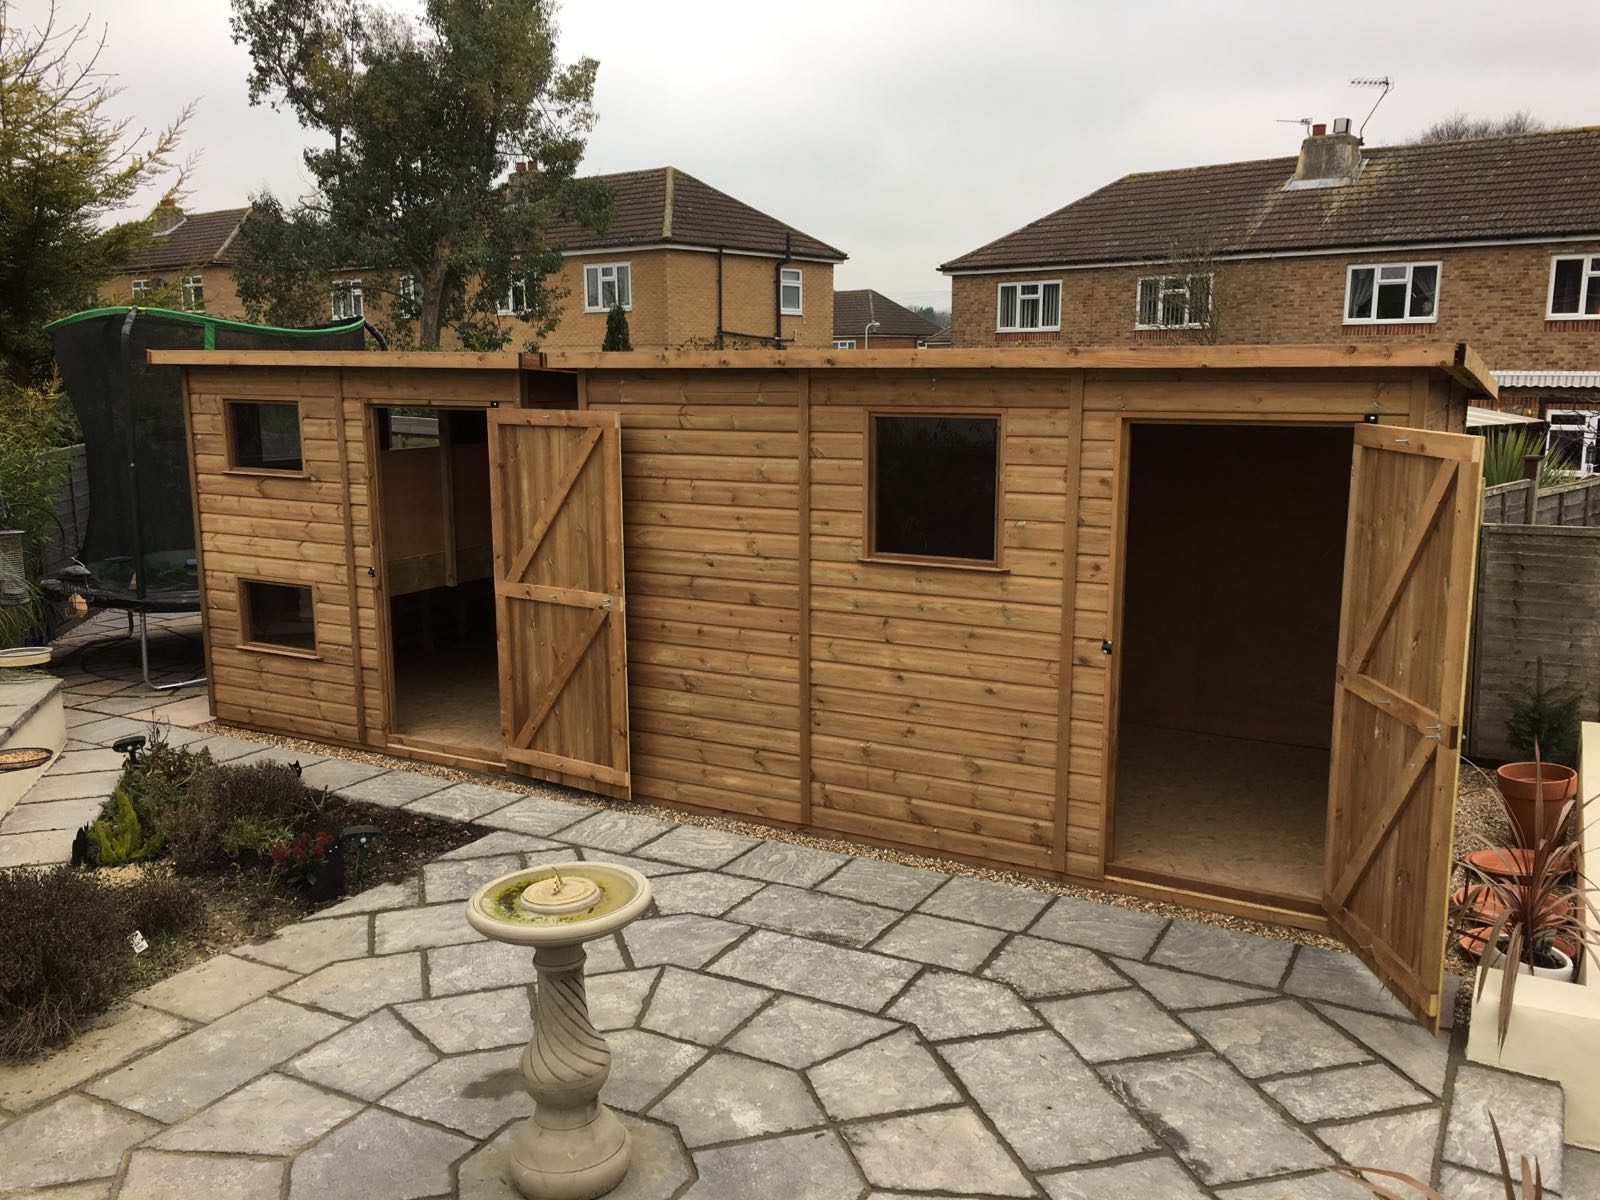 Two made to measure Pent Sheds